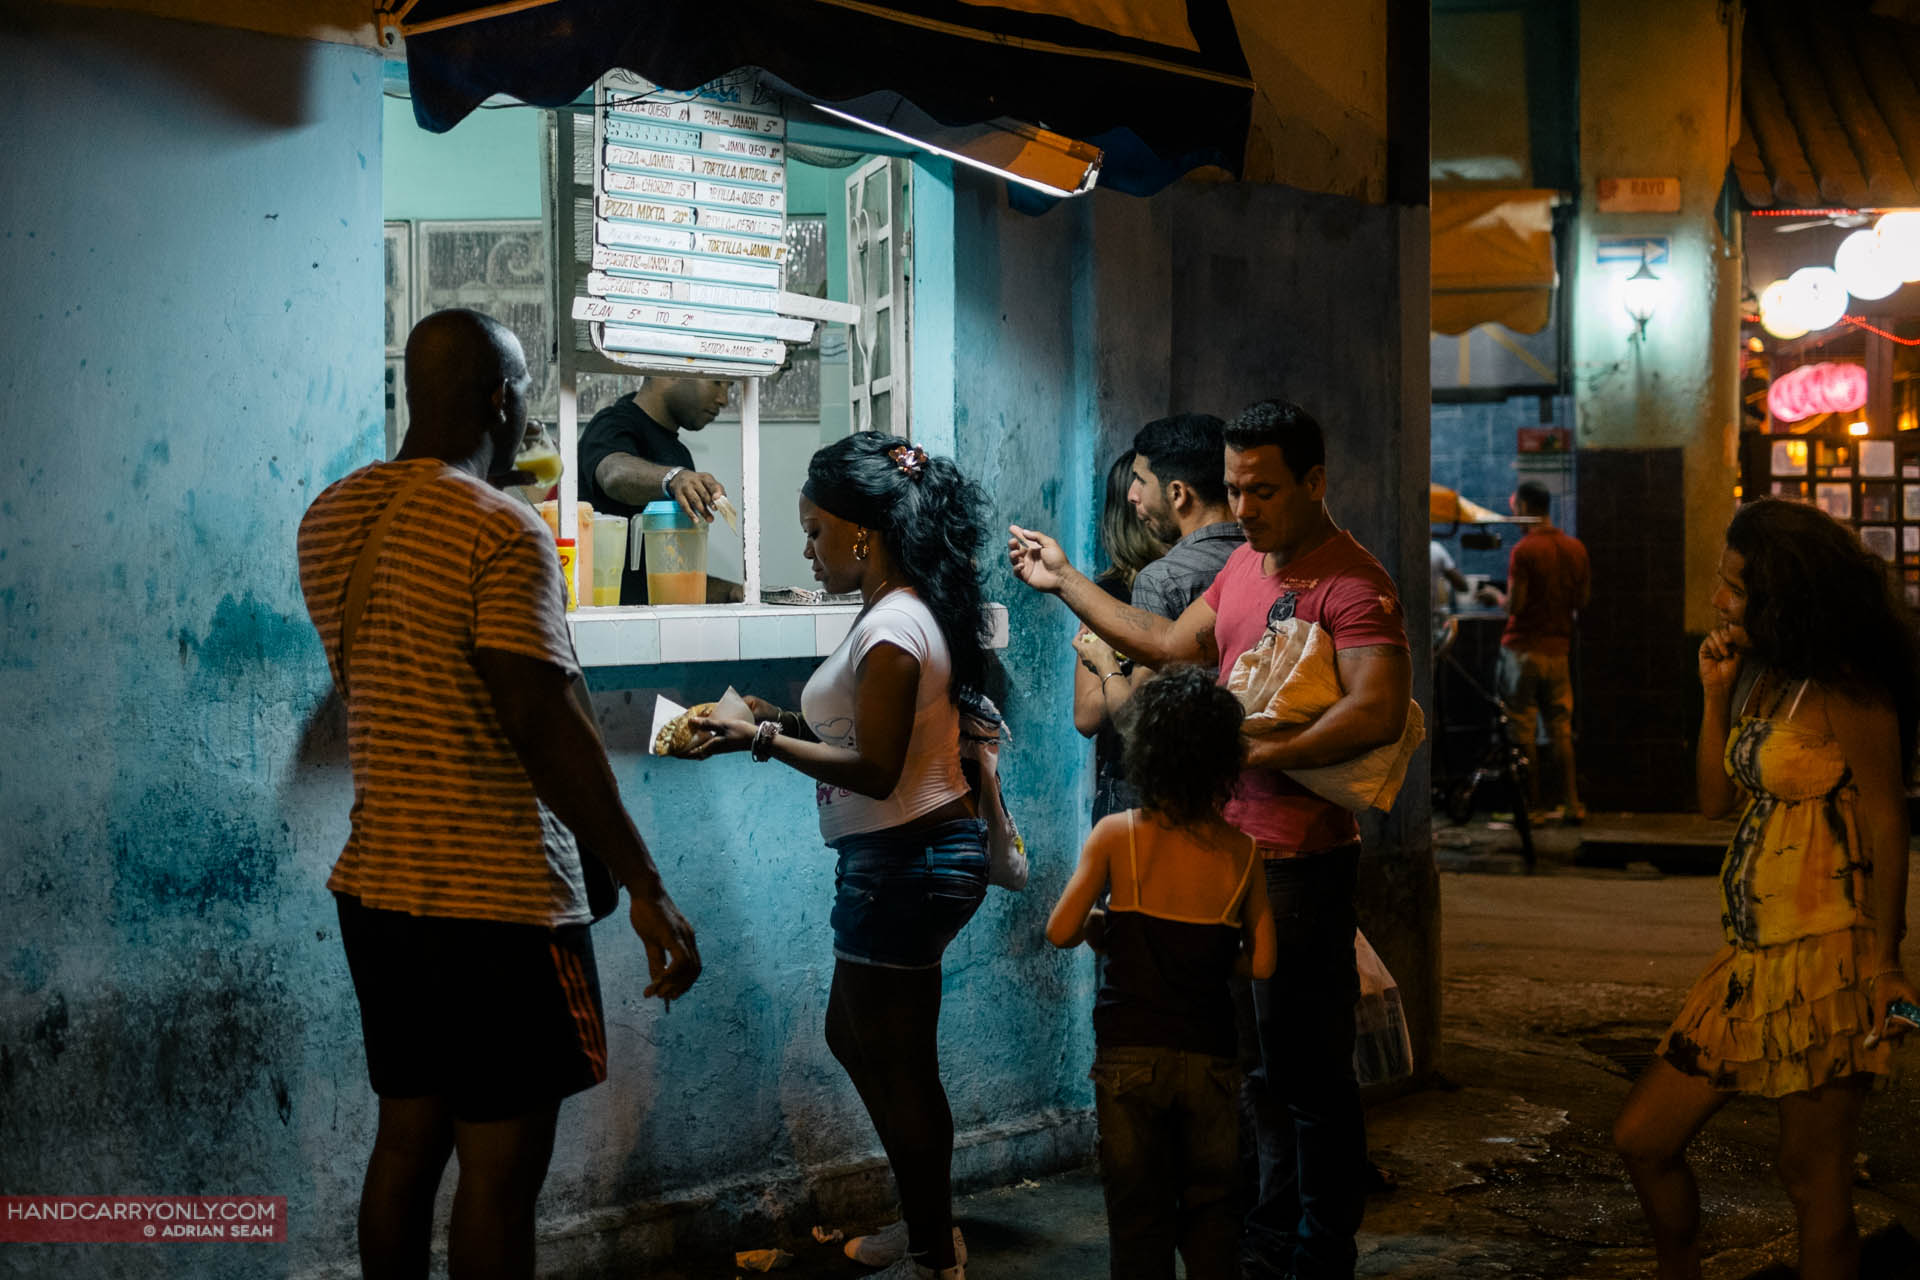 cubans buying food at night havana cuba